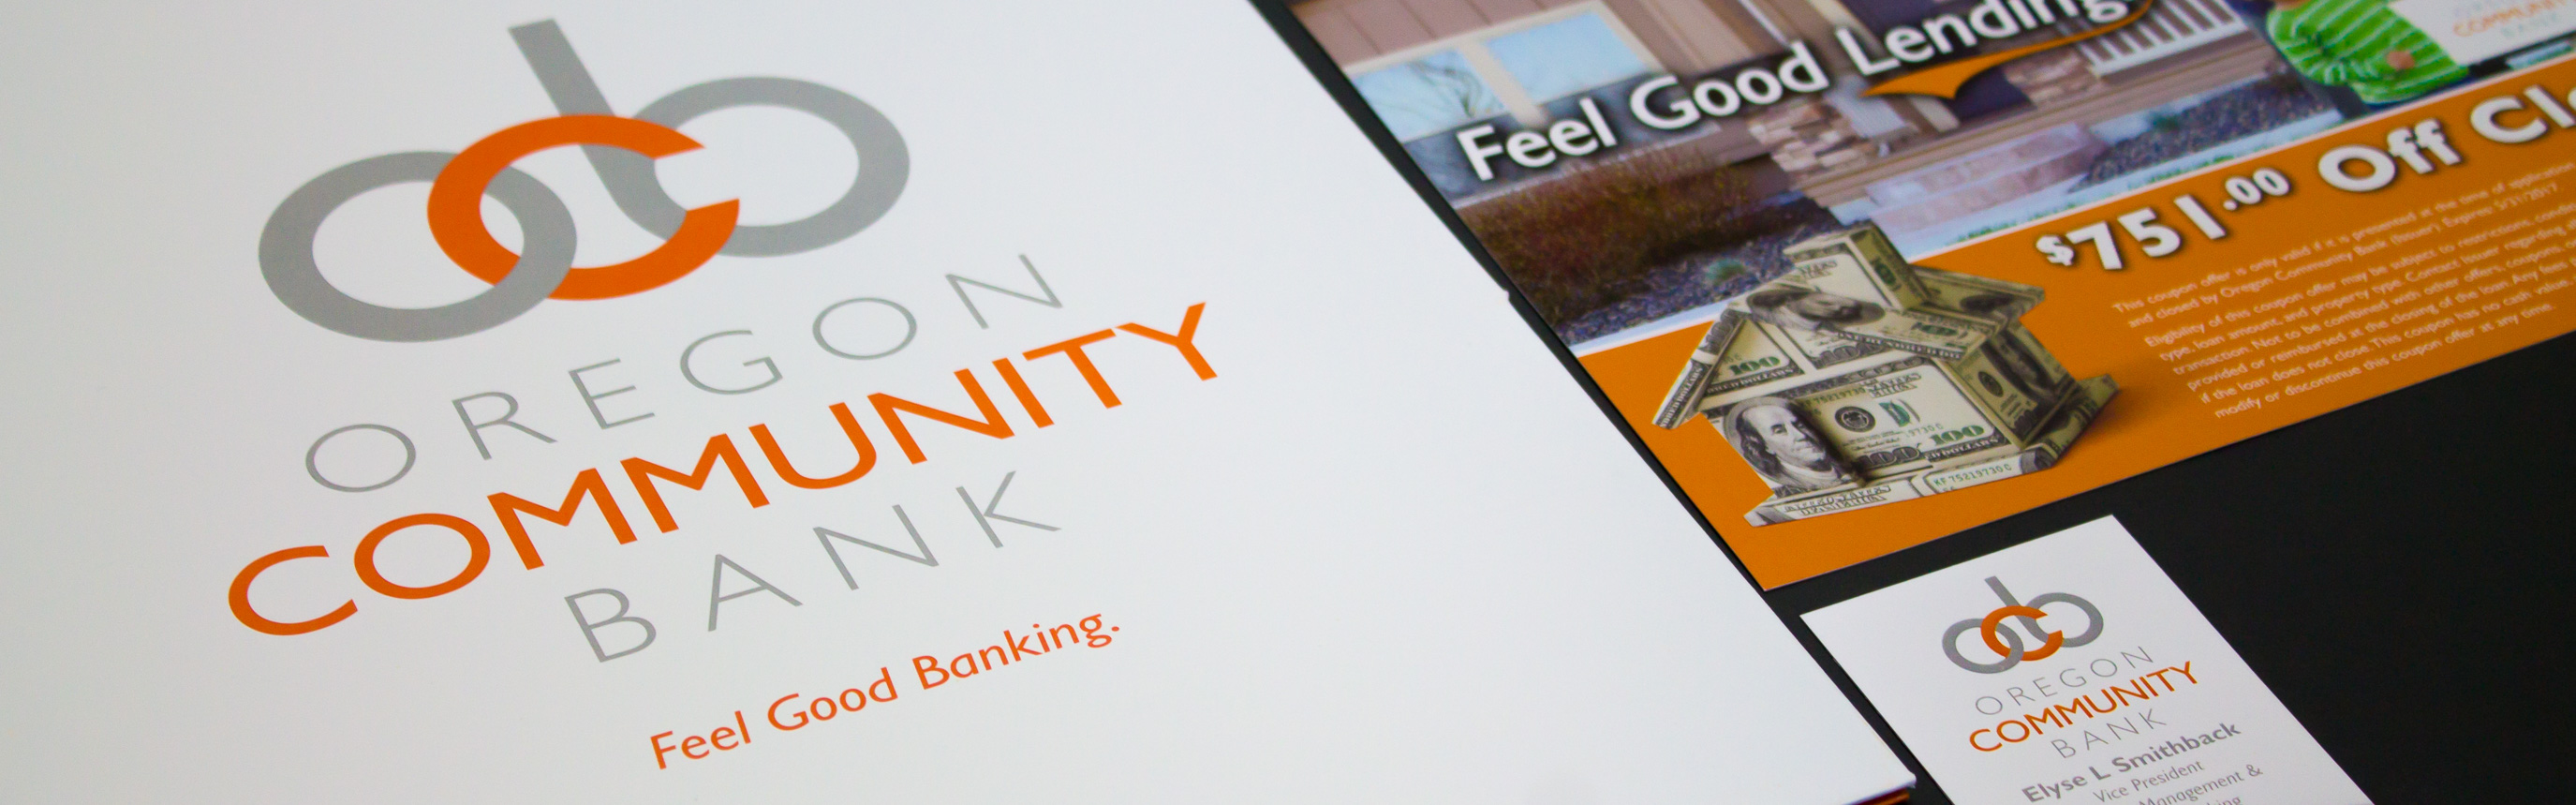 Custom Sign Design & Branding Services Bank